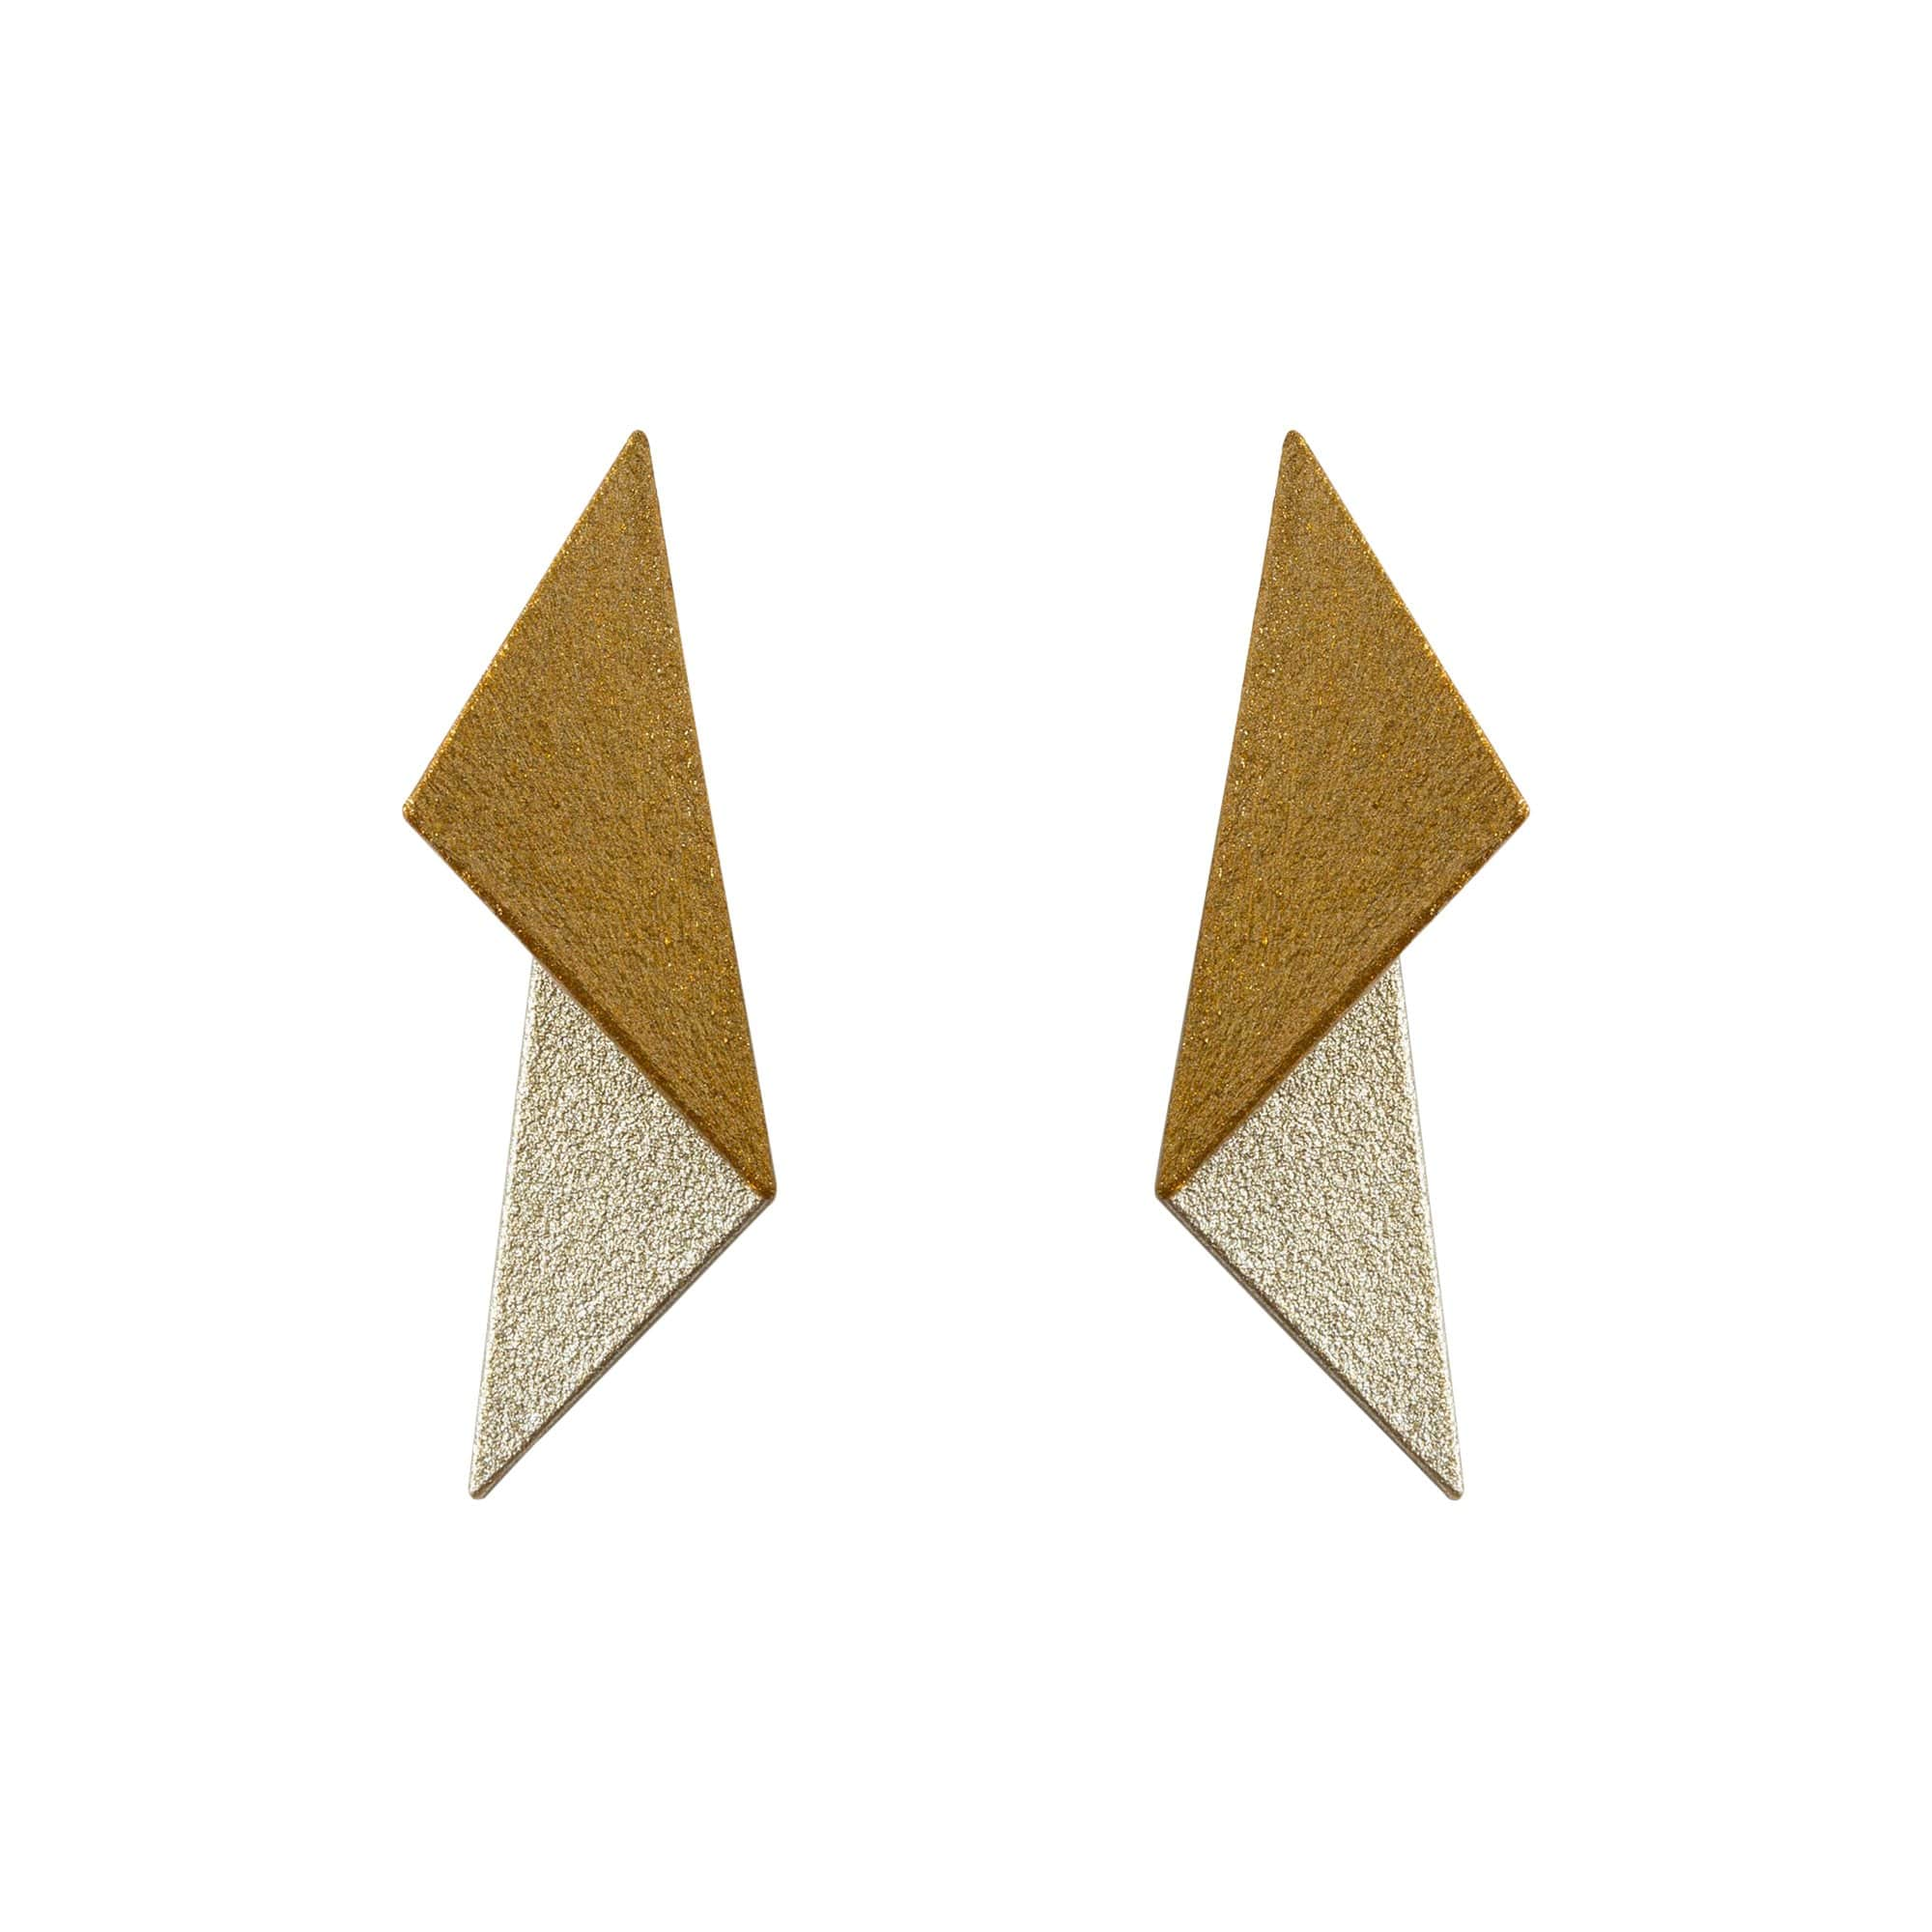 maison 203 Earrings White Gold + Orange Gold Leia Earrings l